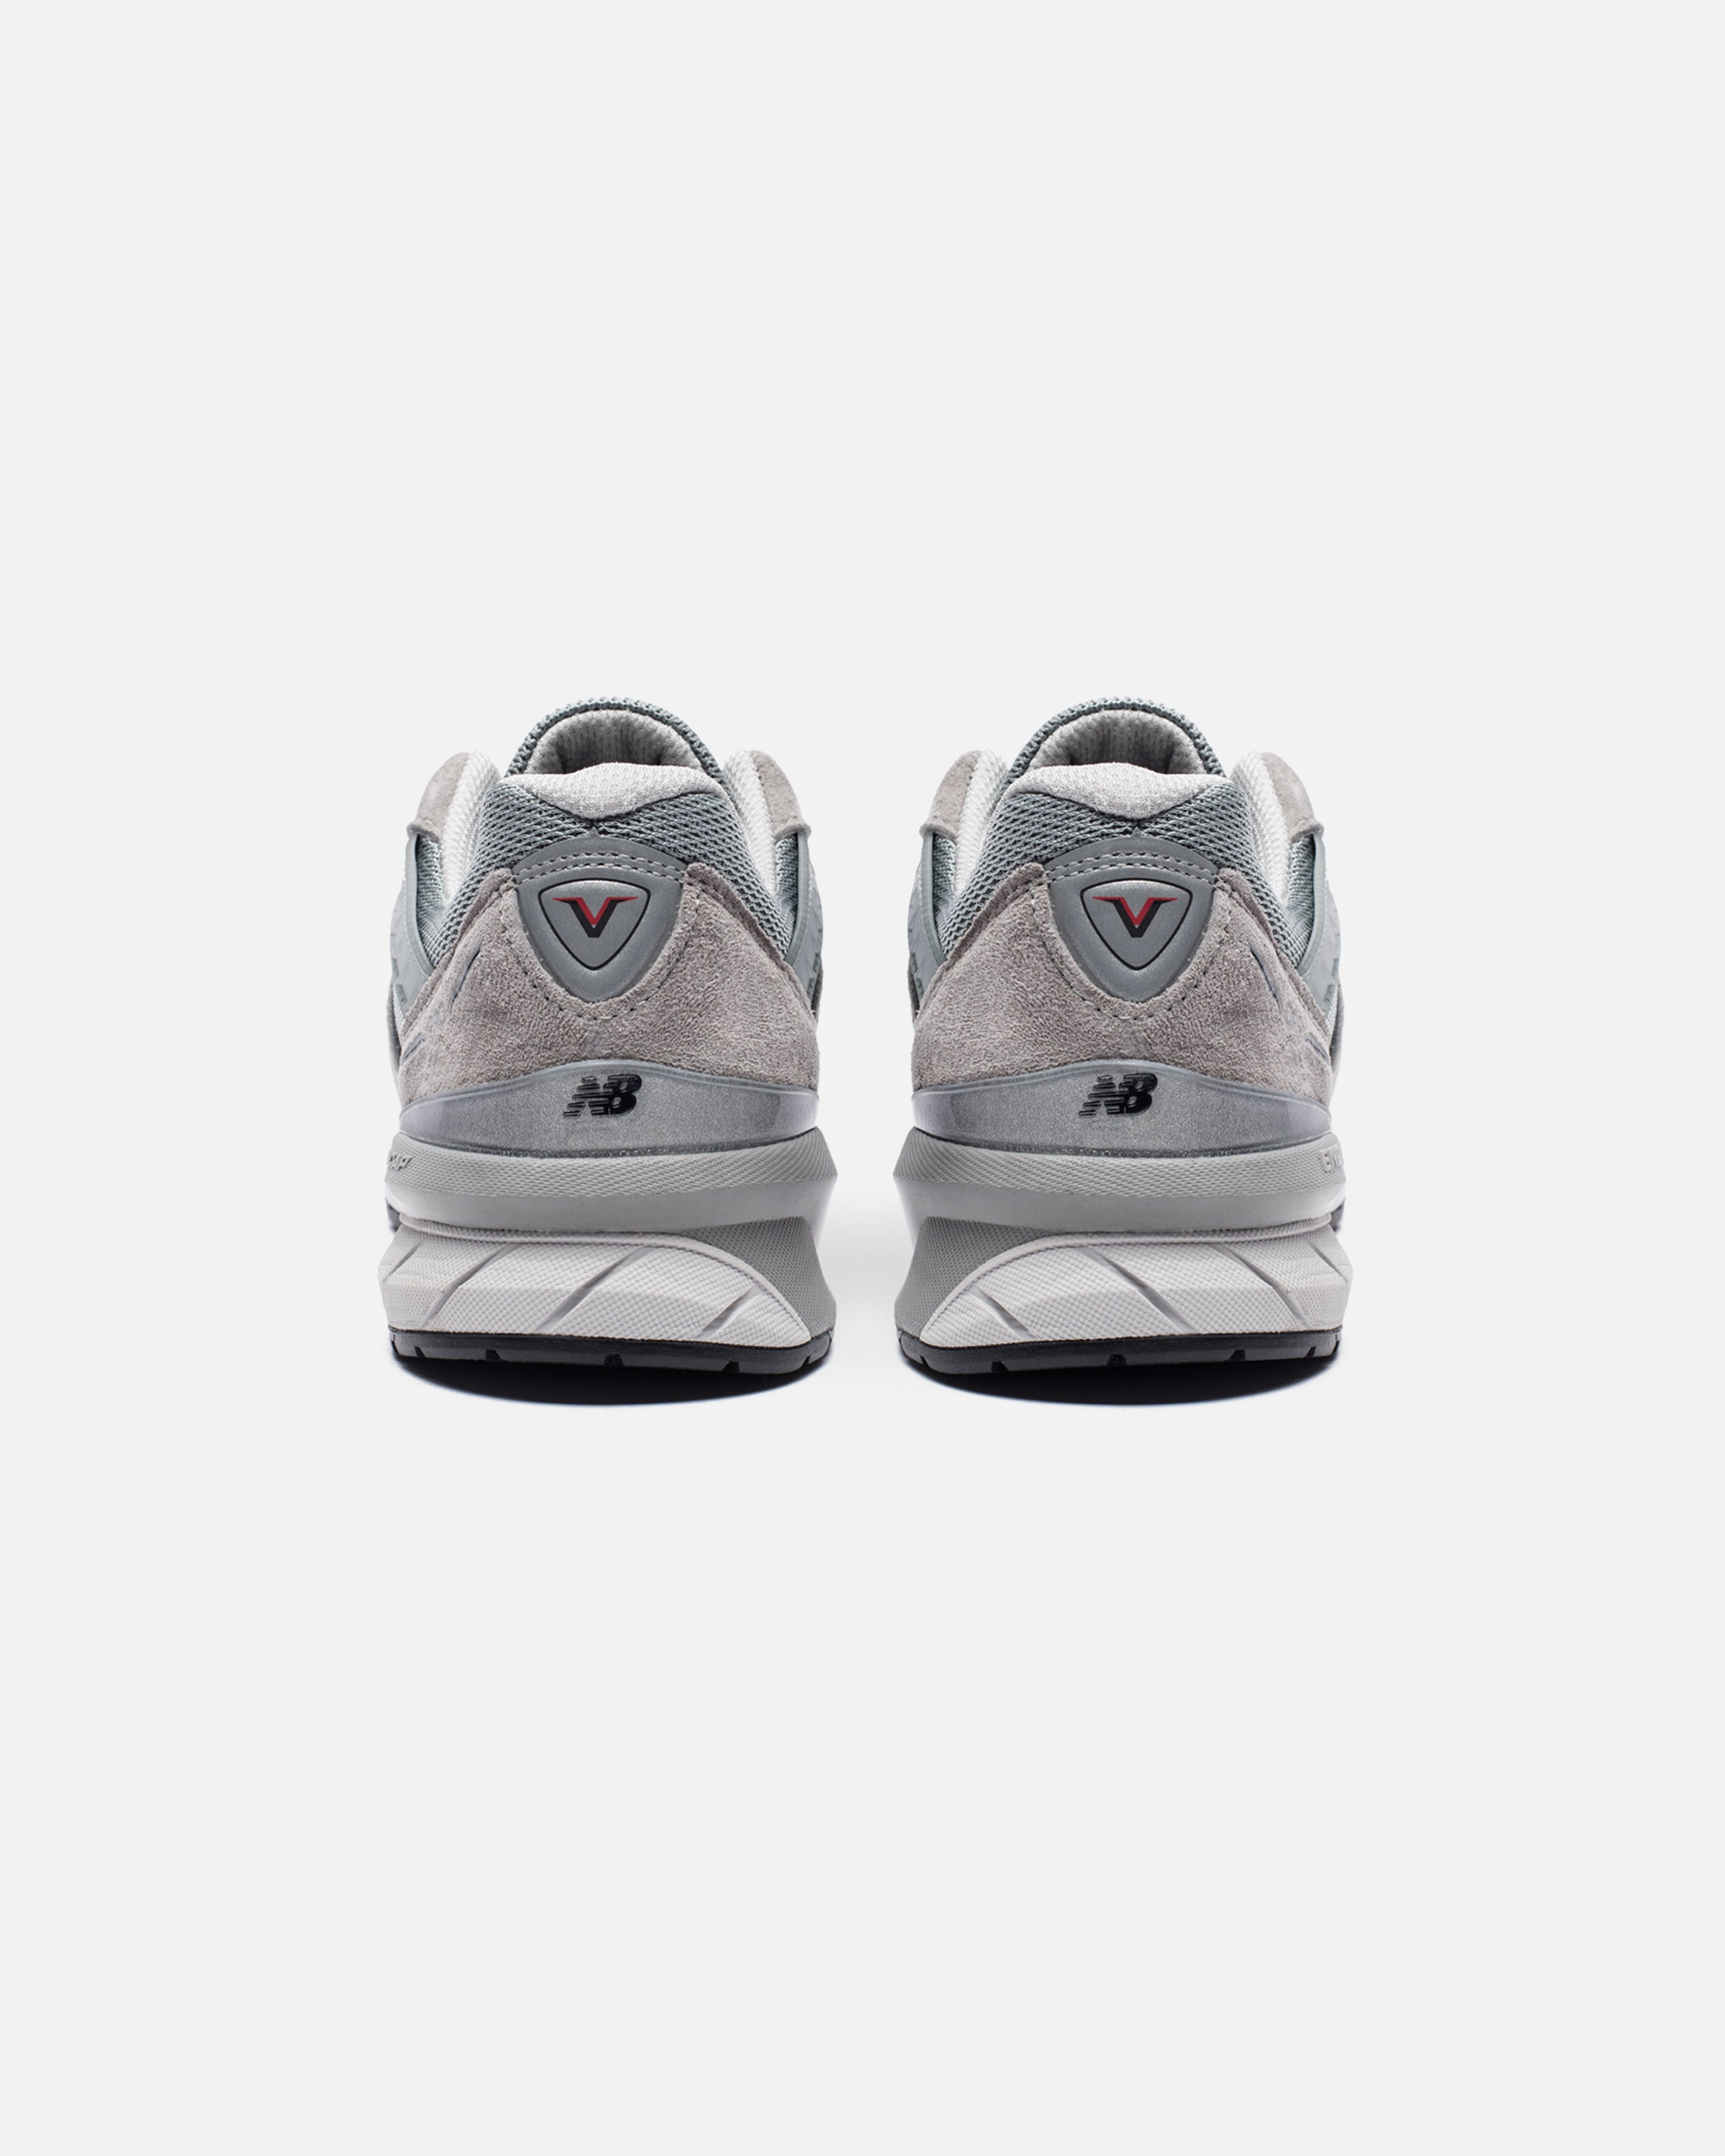 WOMEN'S MADE IN AMERICA 990 - GREY